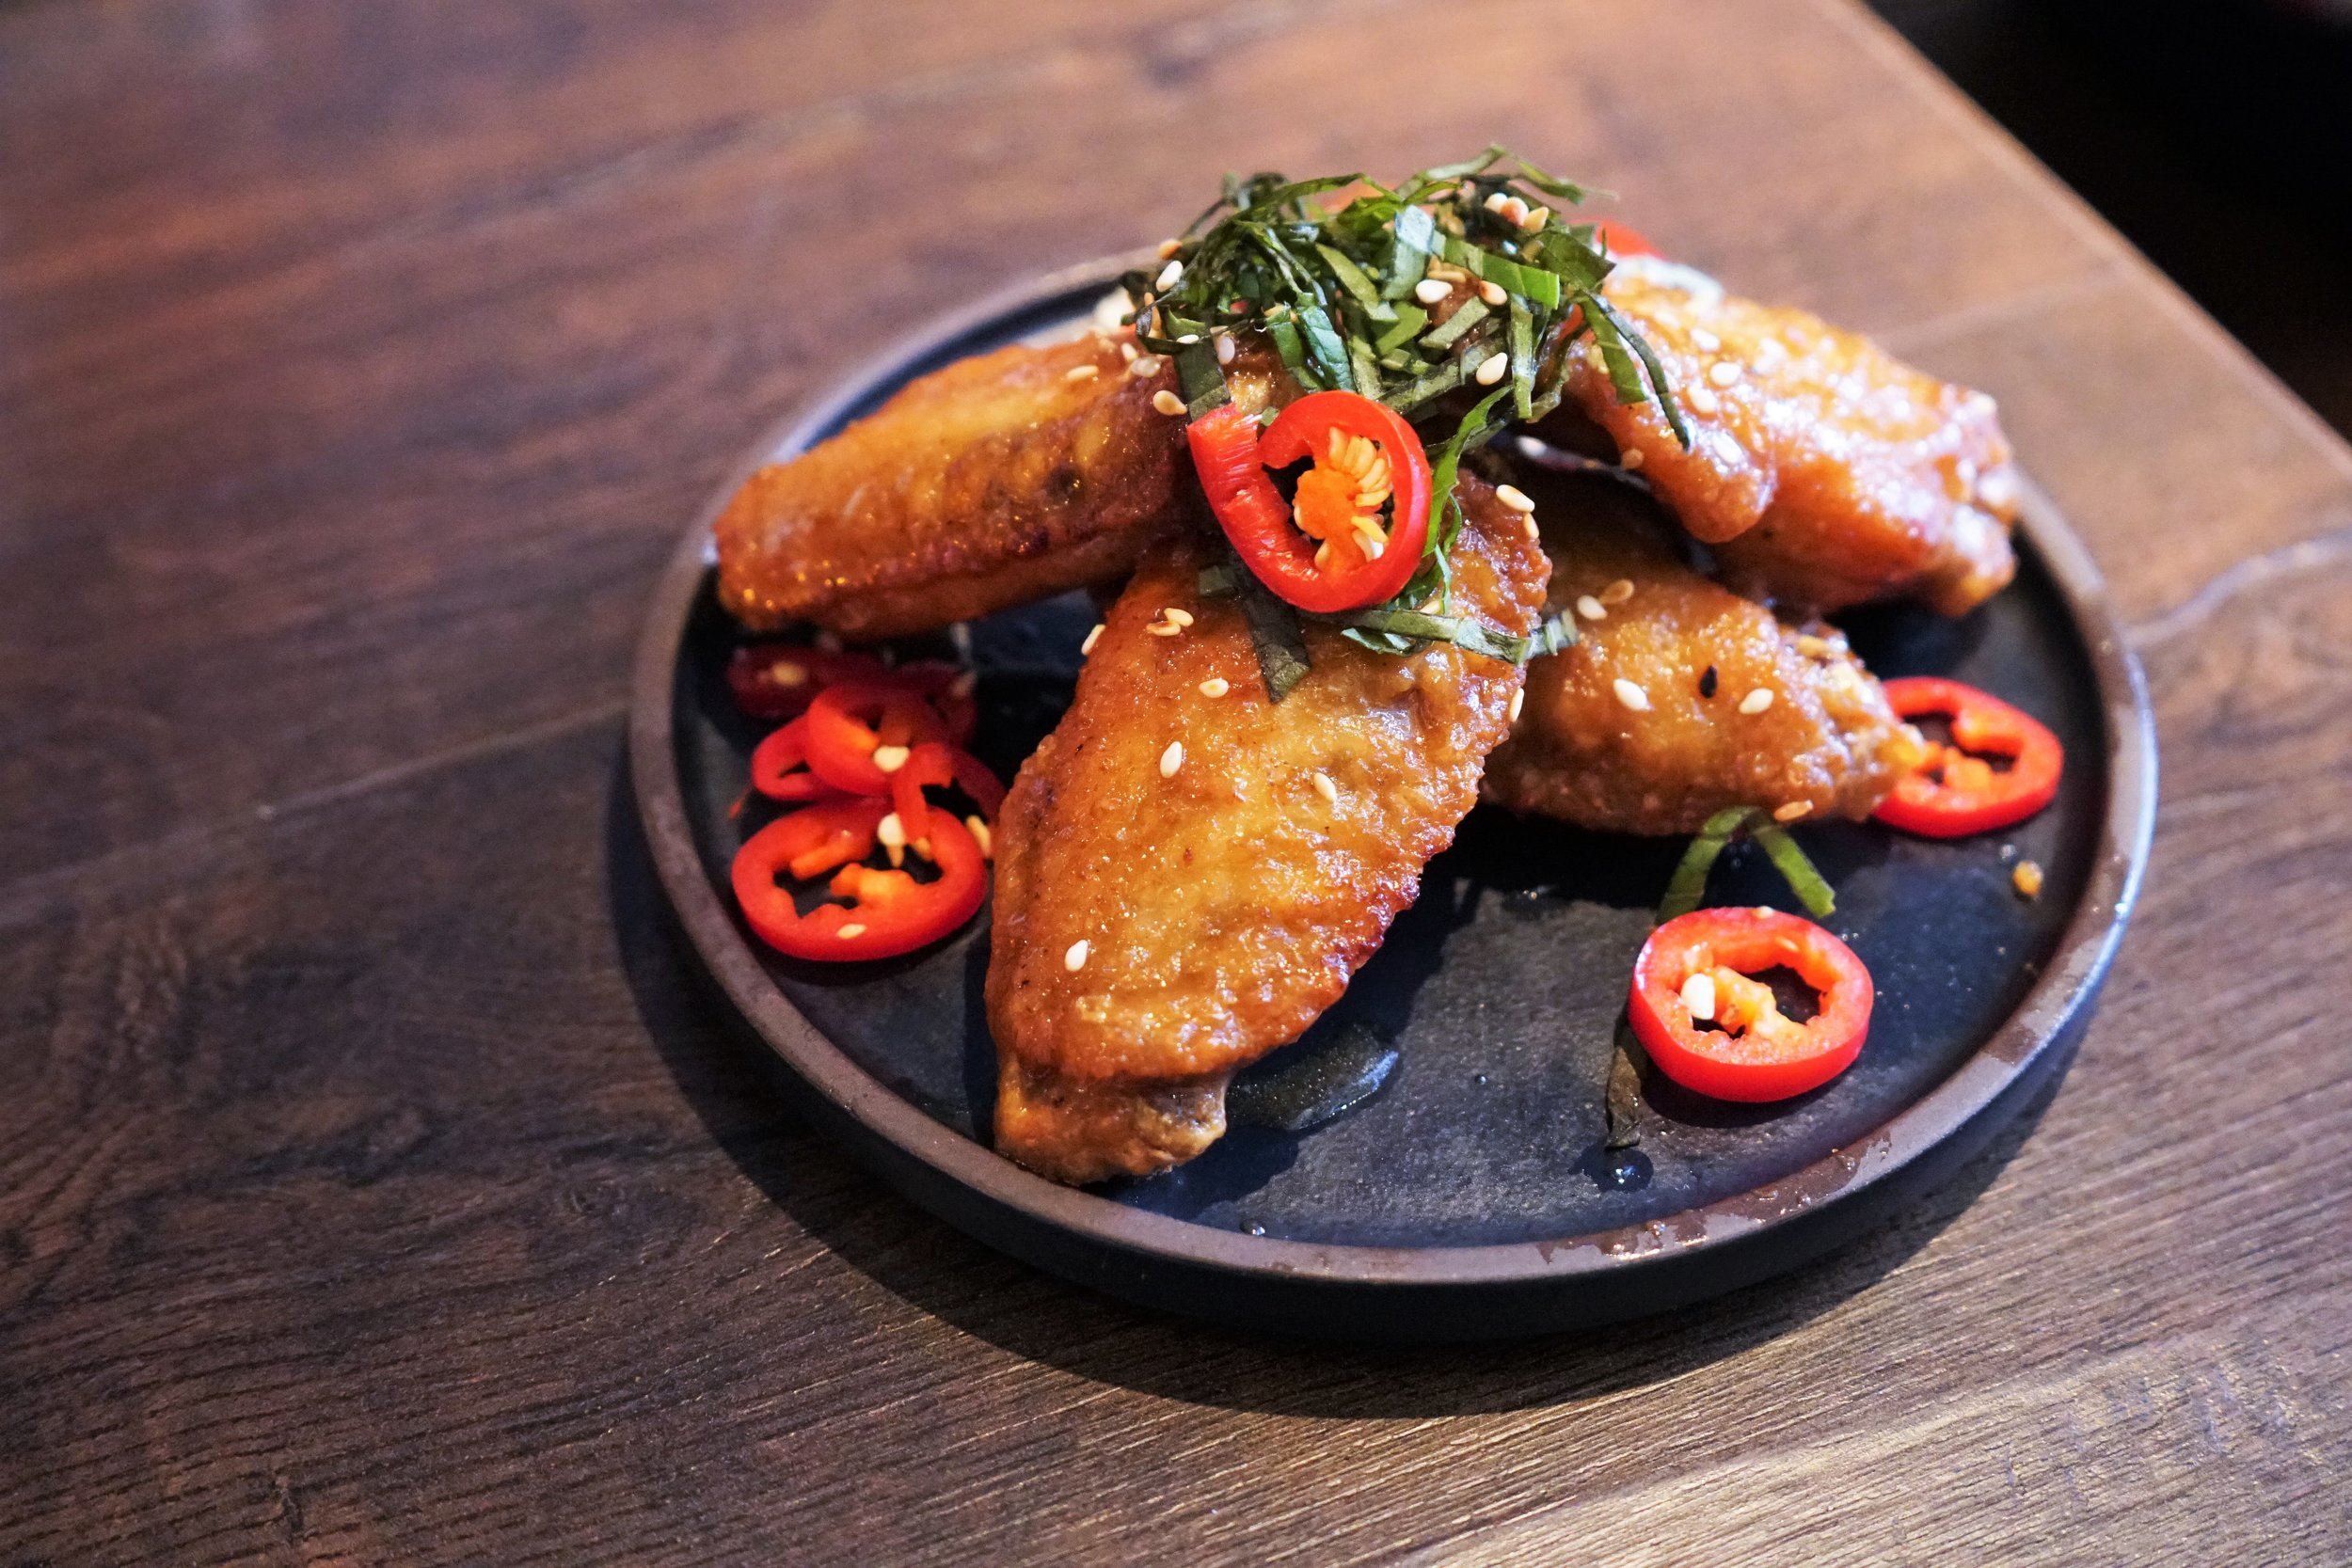 Three-Cup Glazed Chicken Wing at 886 in New York City